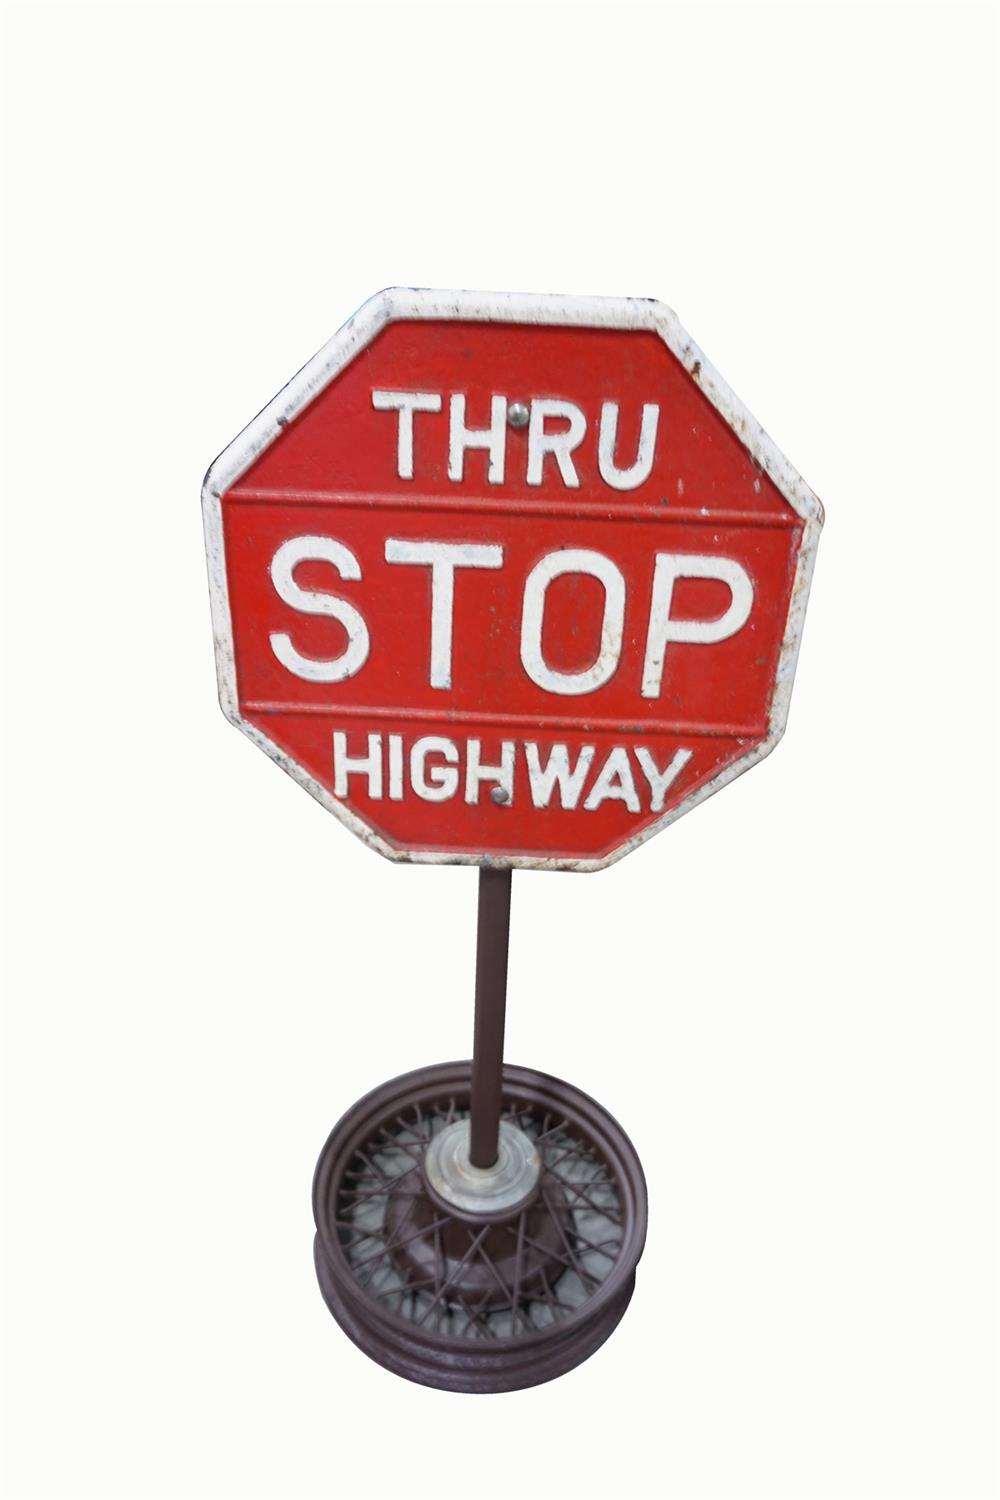 Whats My Car Worth Cast >> Circa 1930s Stop Thru Highway cast metal highway road sign on - 199649